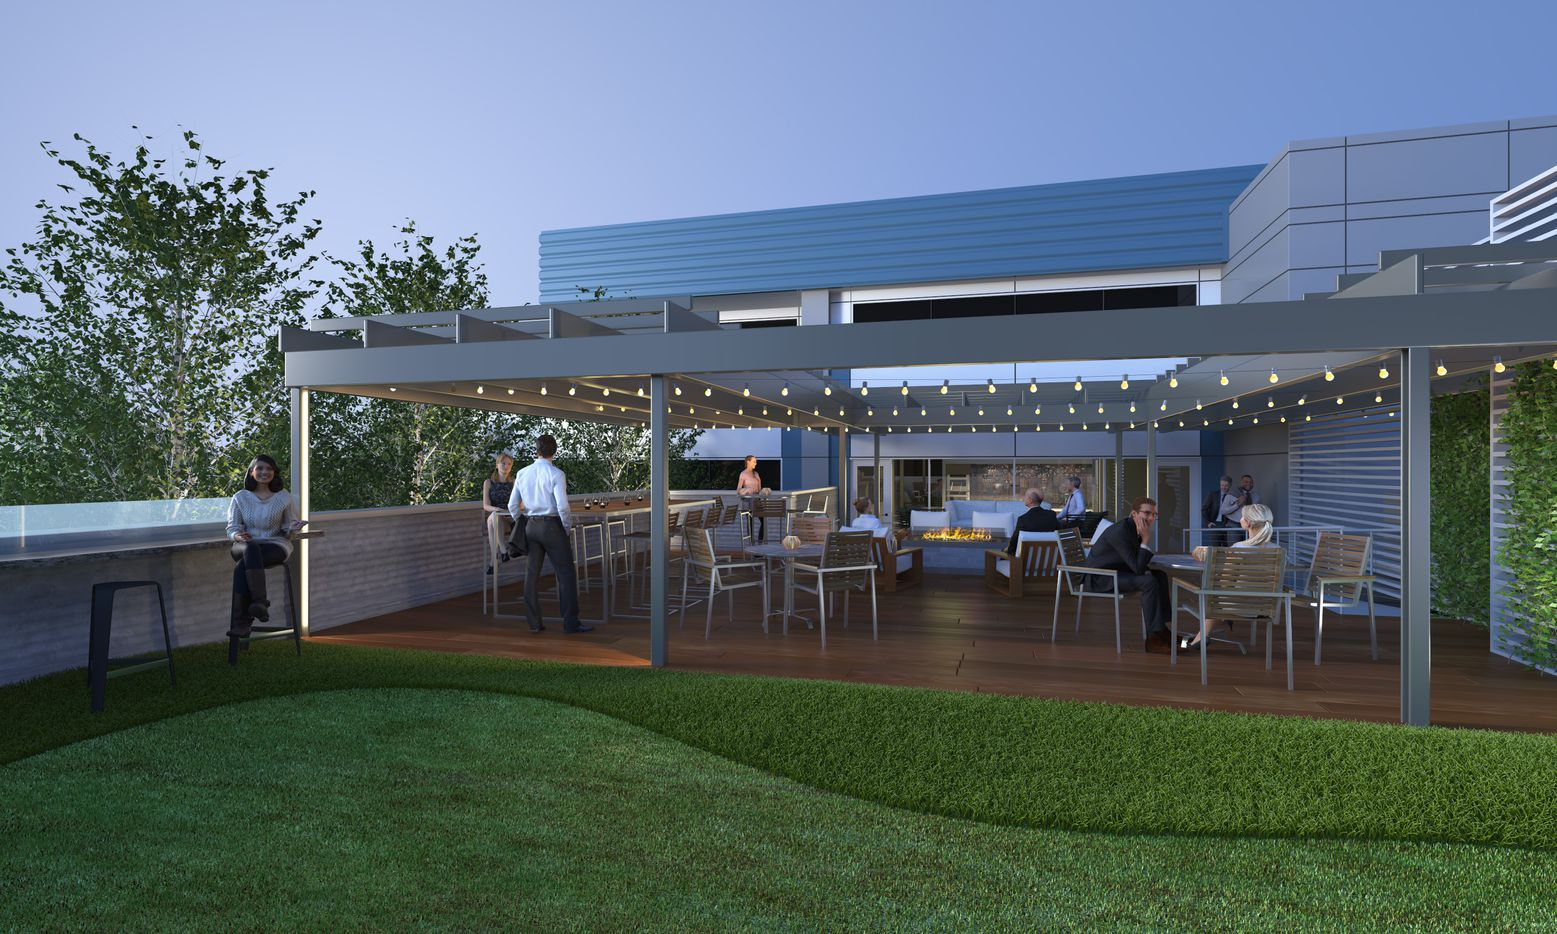 A rooftop deck is planned at the 3333 Welborn building.